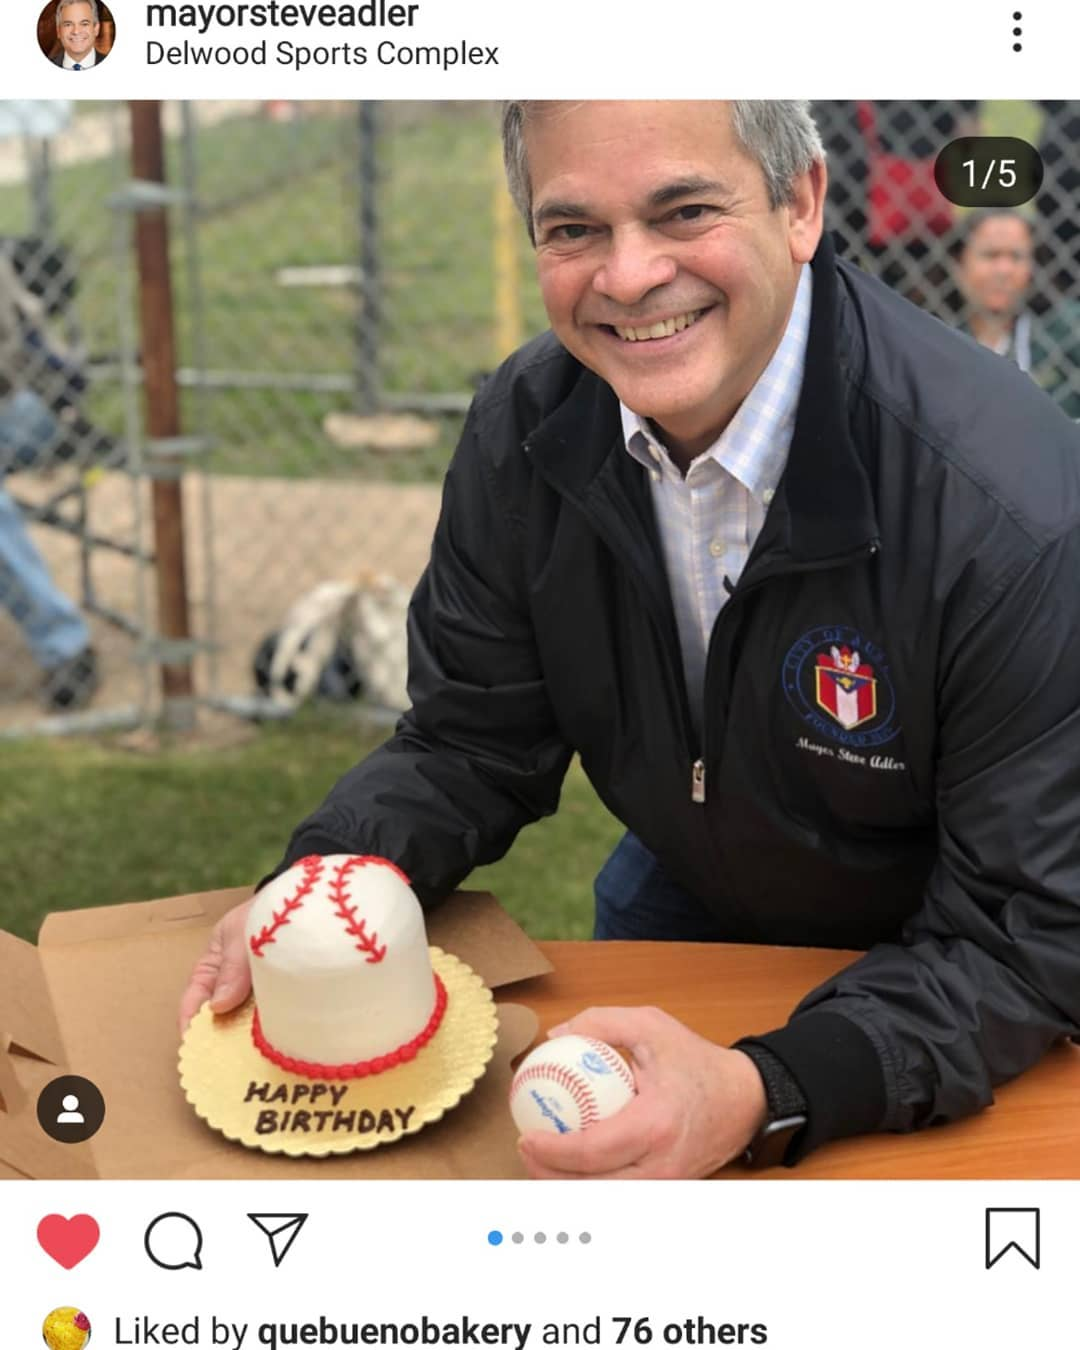 That's Vanessa's cake with the mayor! Thanks to @mayorsteveadler for helping us celebrate Opening Day at Delwood.